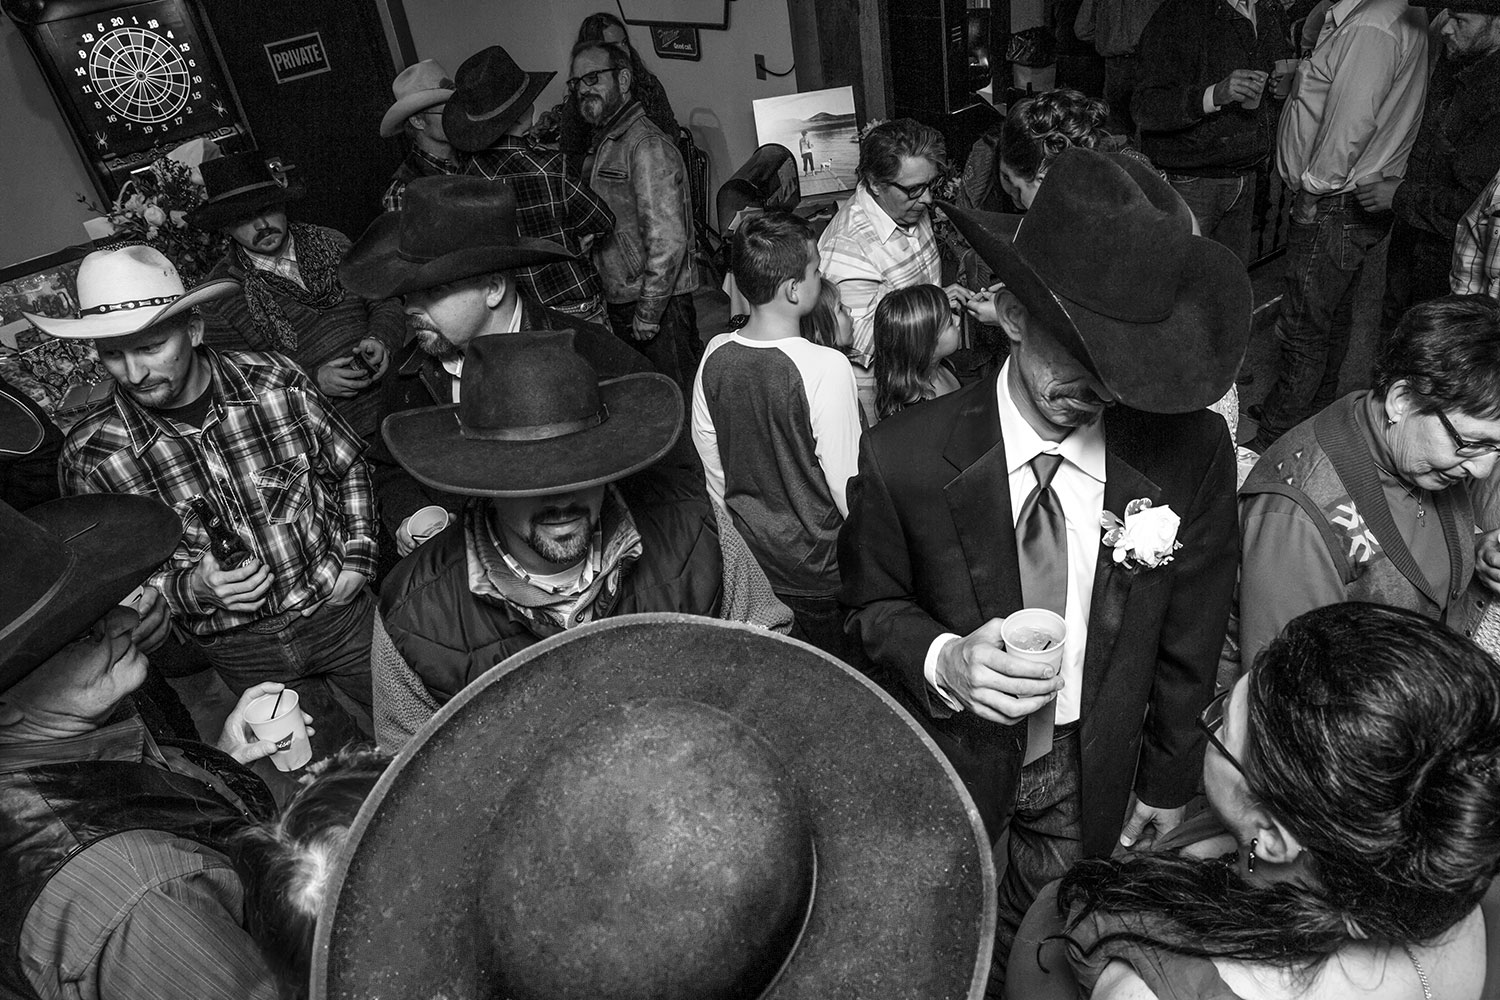 Crowd of Hats